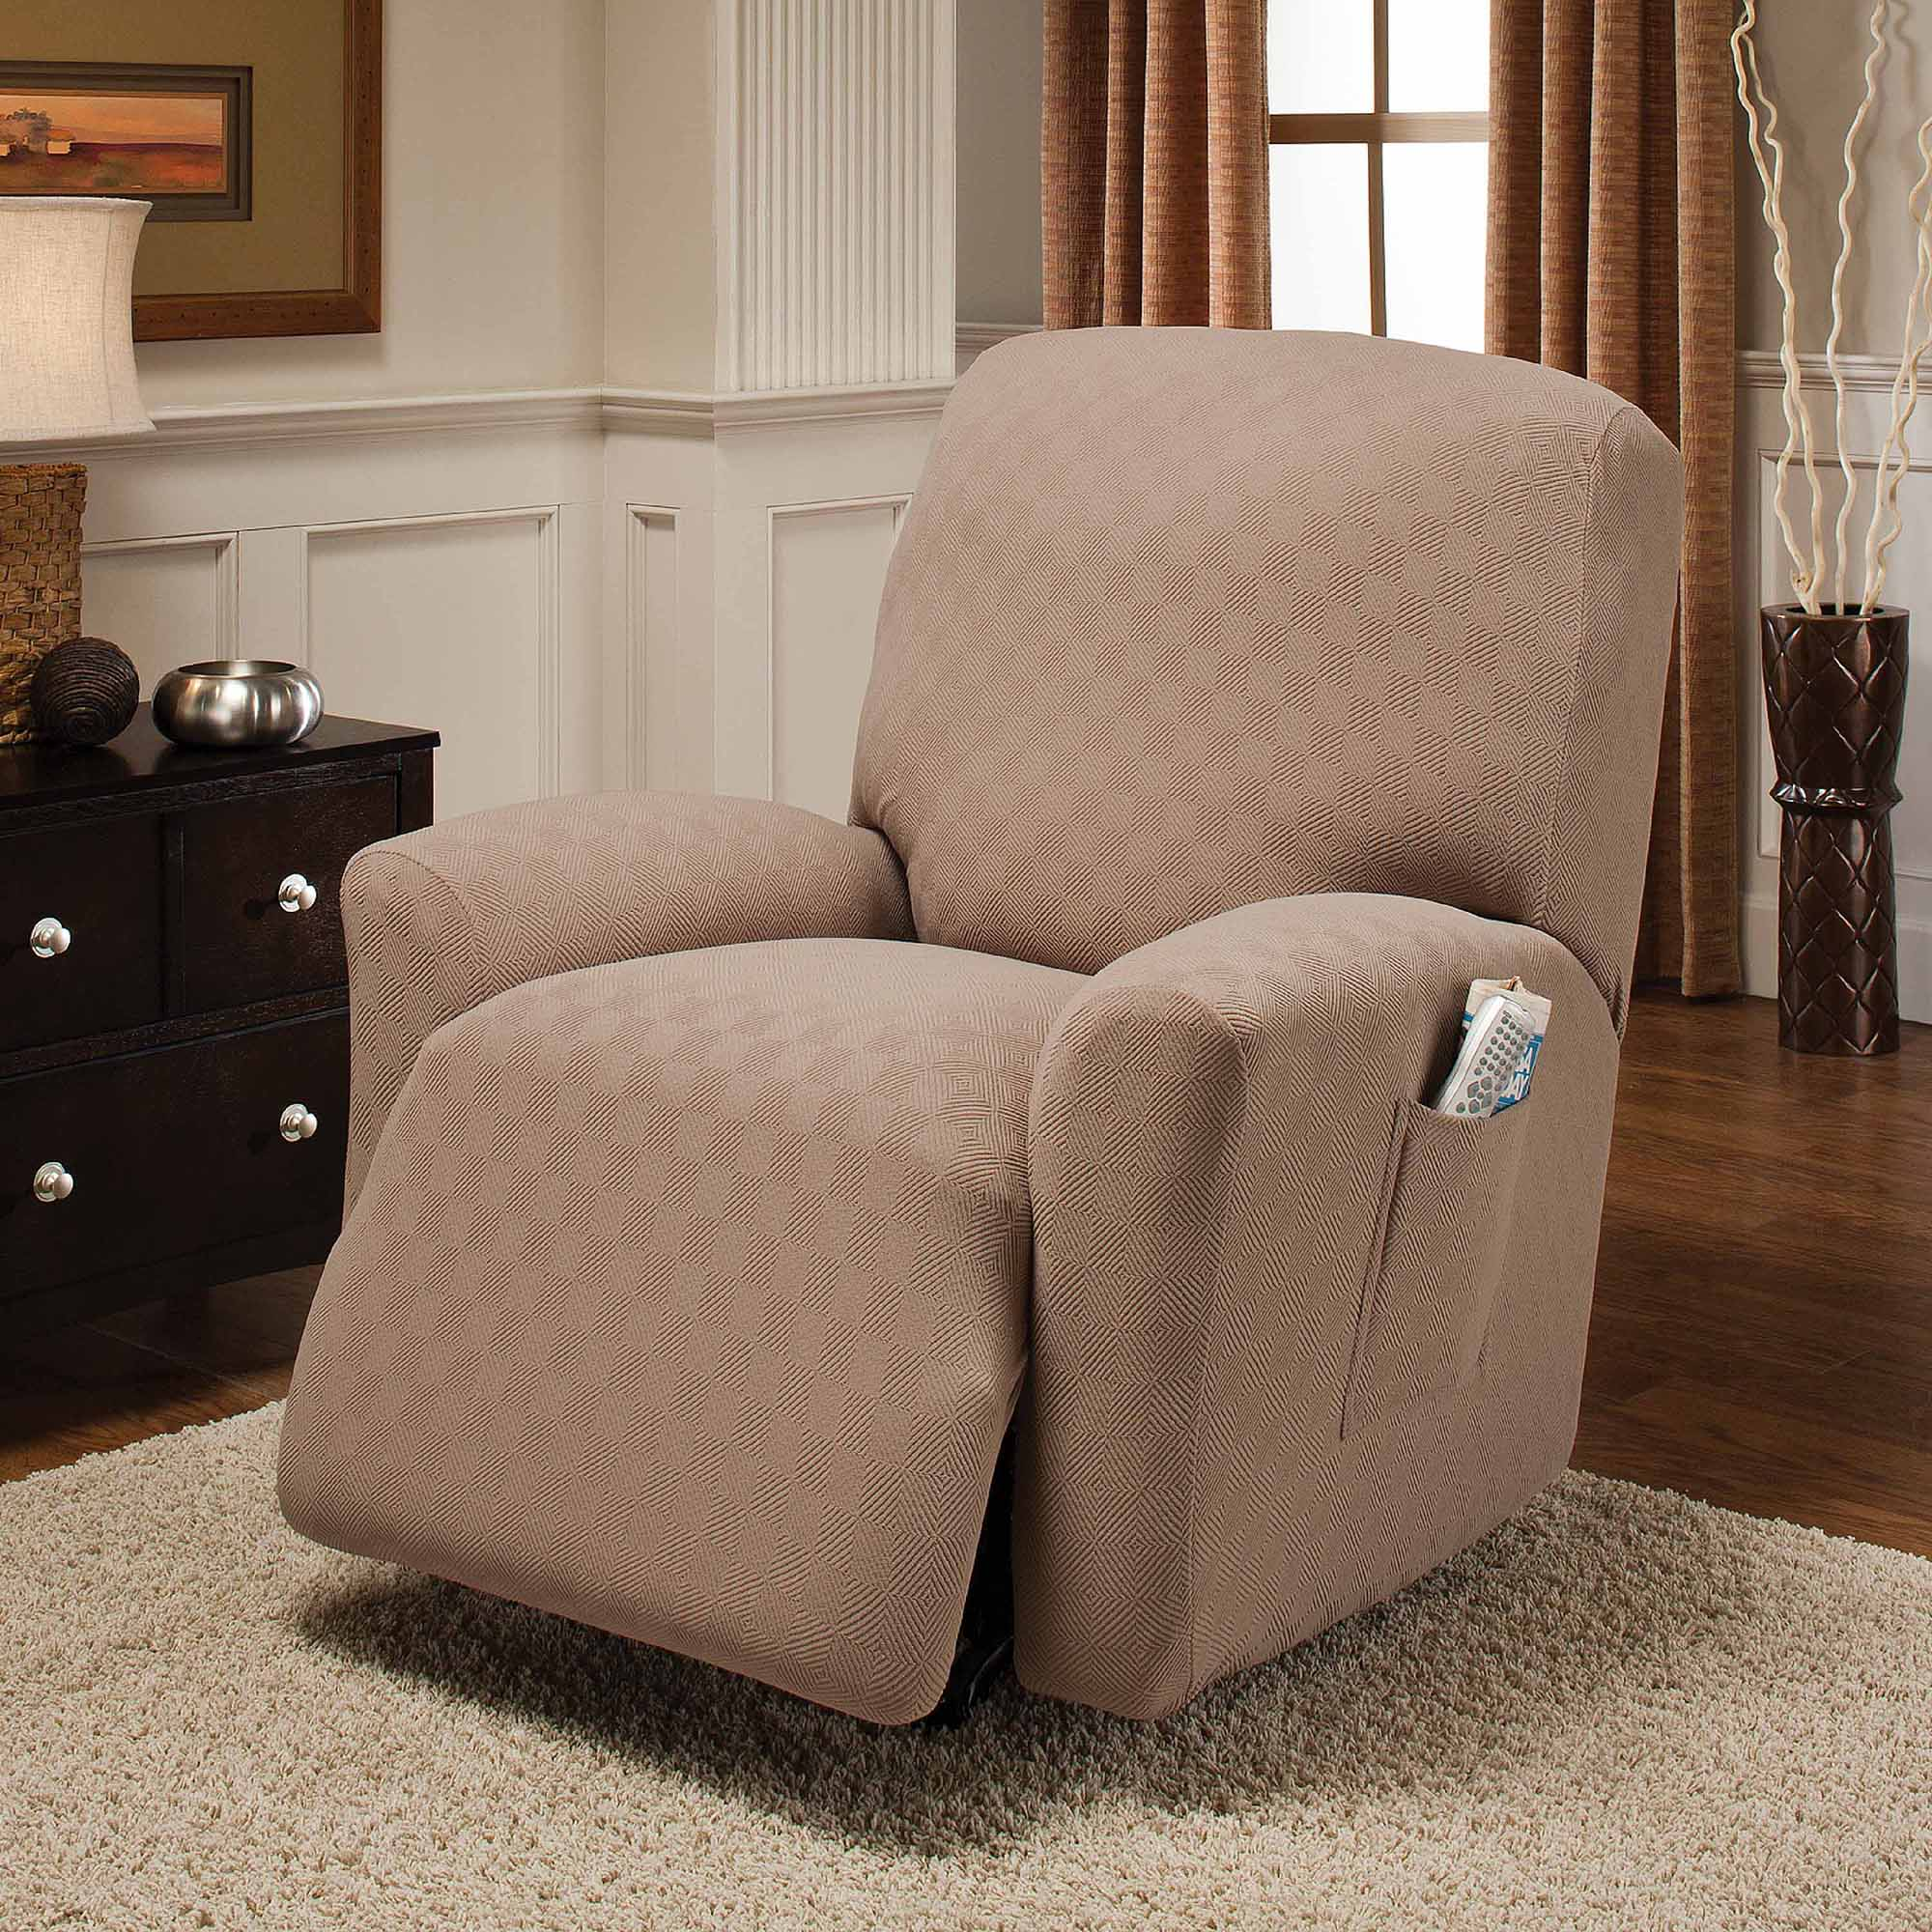 Large Chair Slipcovers Jersey Stretch Large Recliner Slipcover Walmart